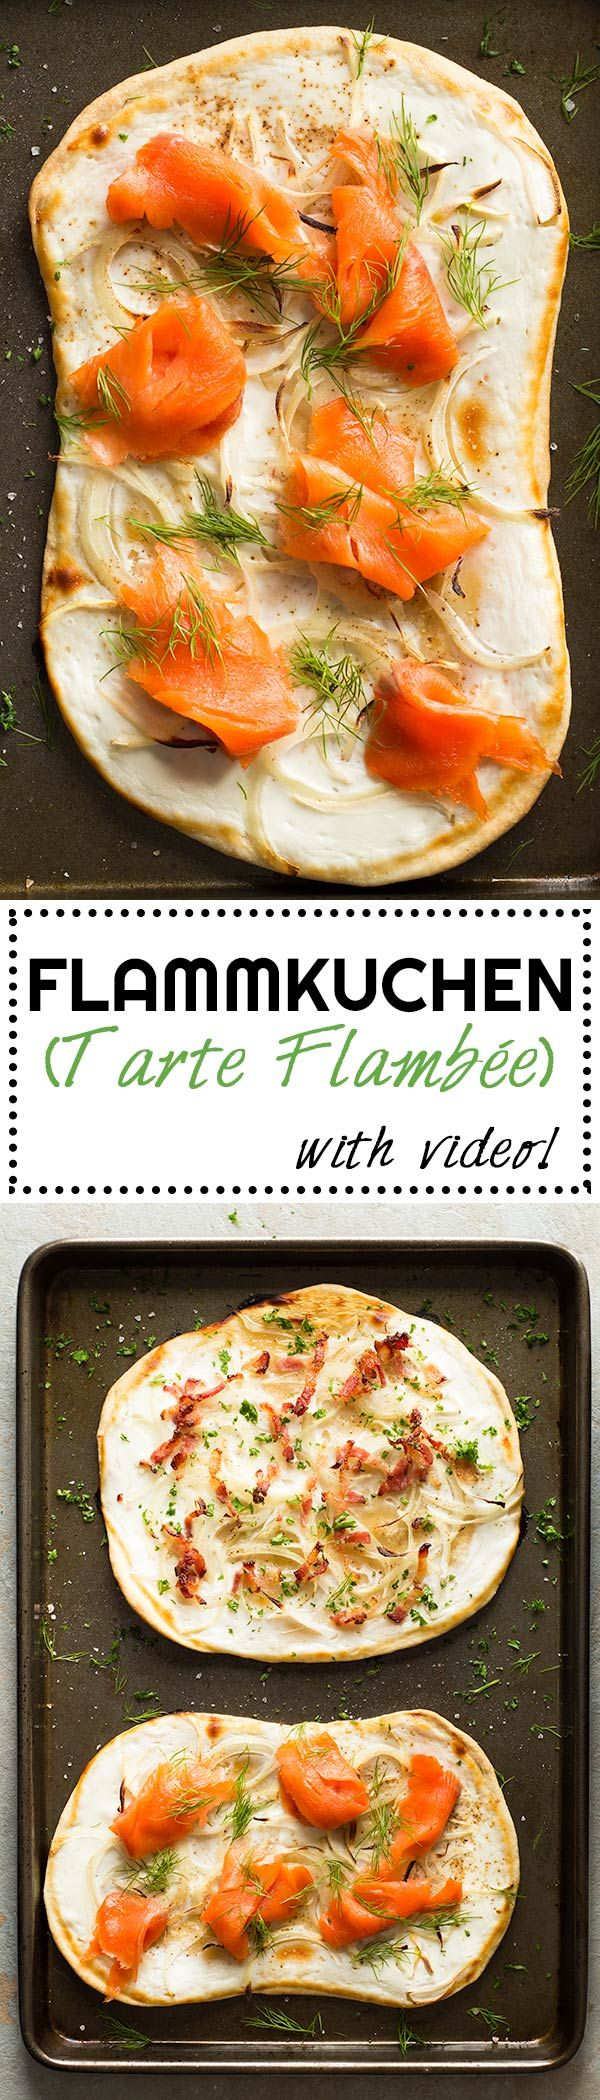 Flammkuchen a.k.a. Tarte Flambée, a.k.a. German Pizza, a.k.a French Pizza. Call it what you want, one thing is for sure, it is BEYOND DELICIOUS! via @Green Healthy Cooking